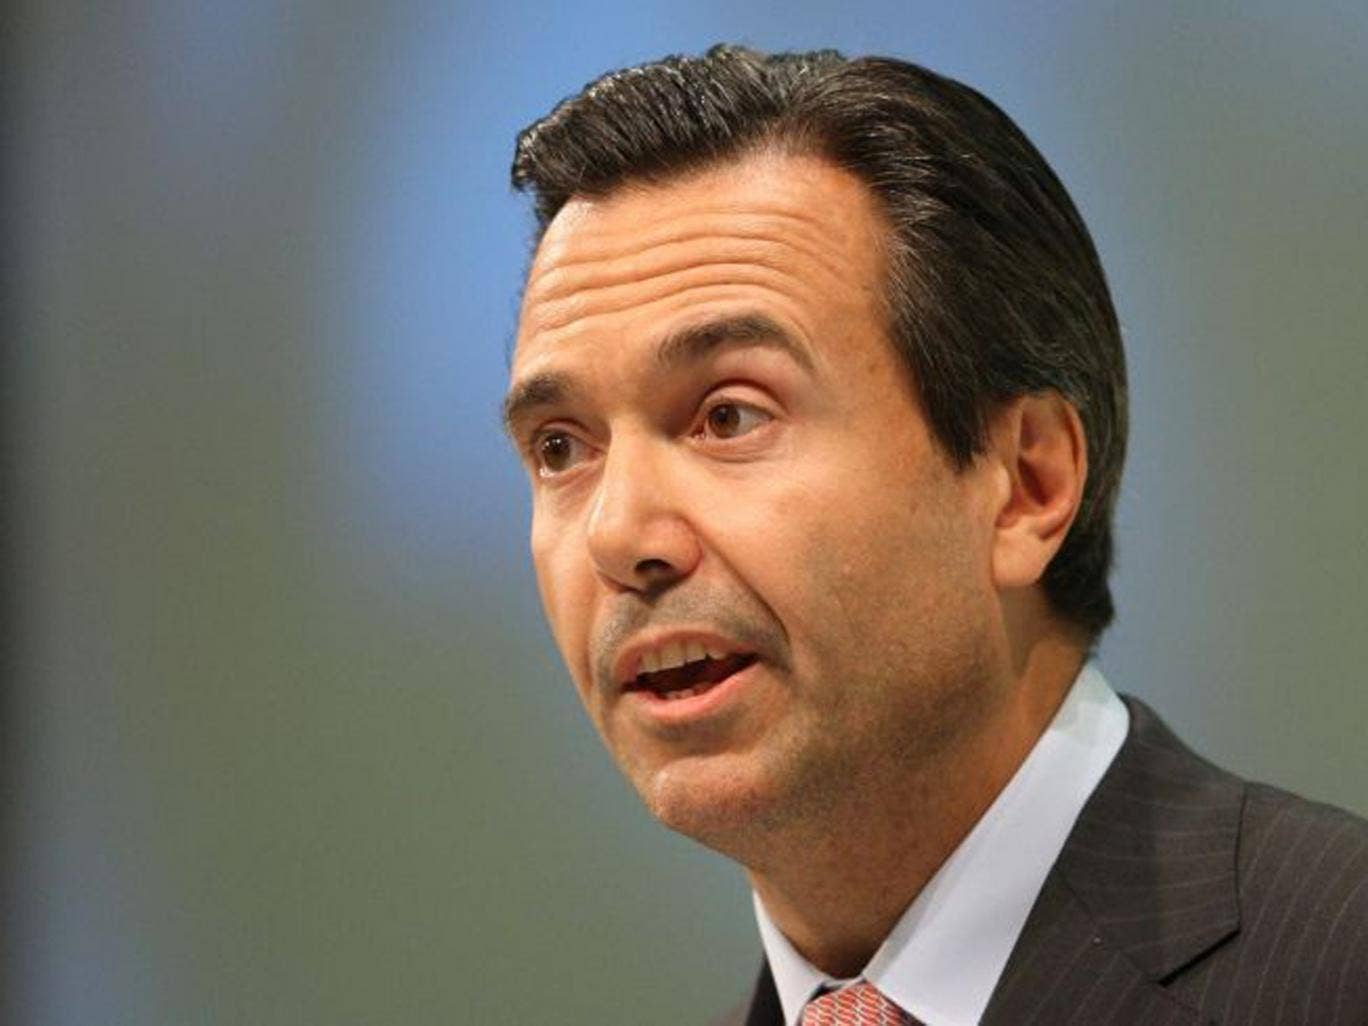 Antonio Horta-Osorio contends that Lloyds is not too mighty and its bonus culture makes sense